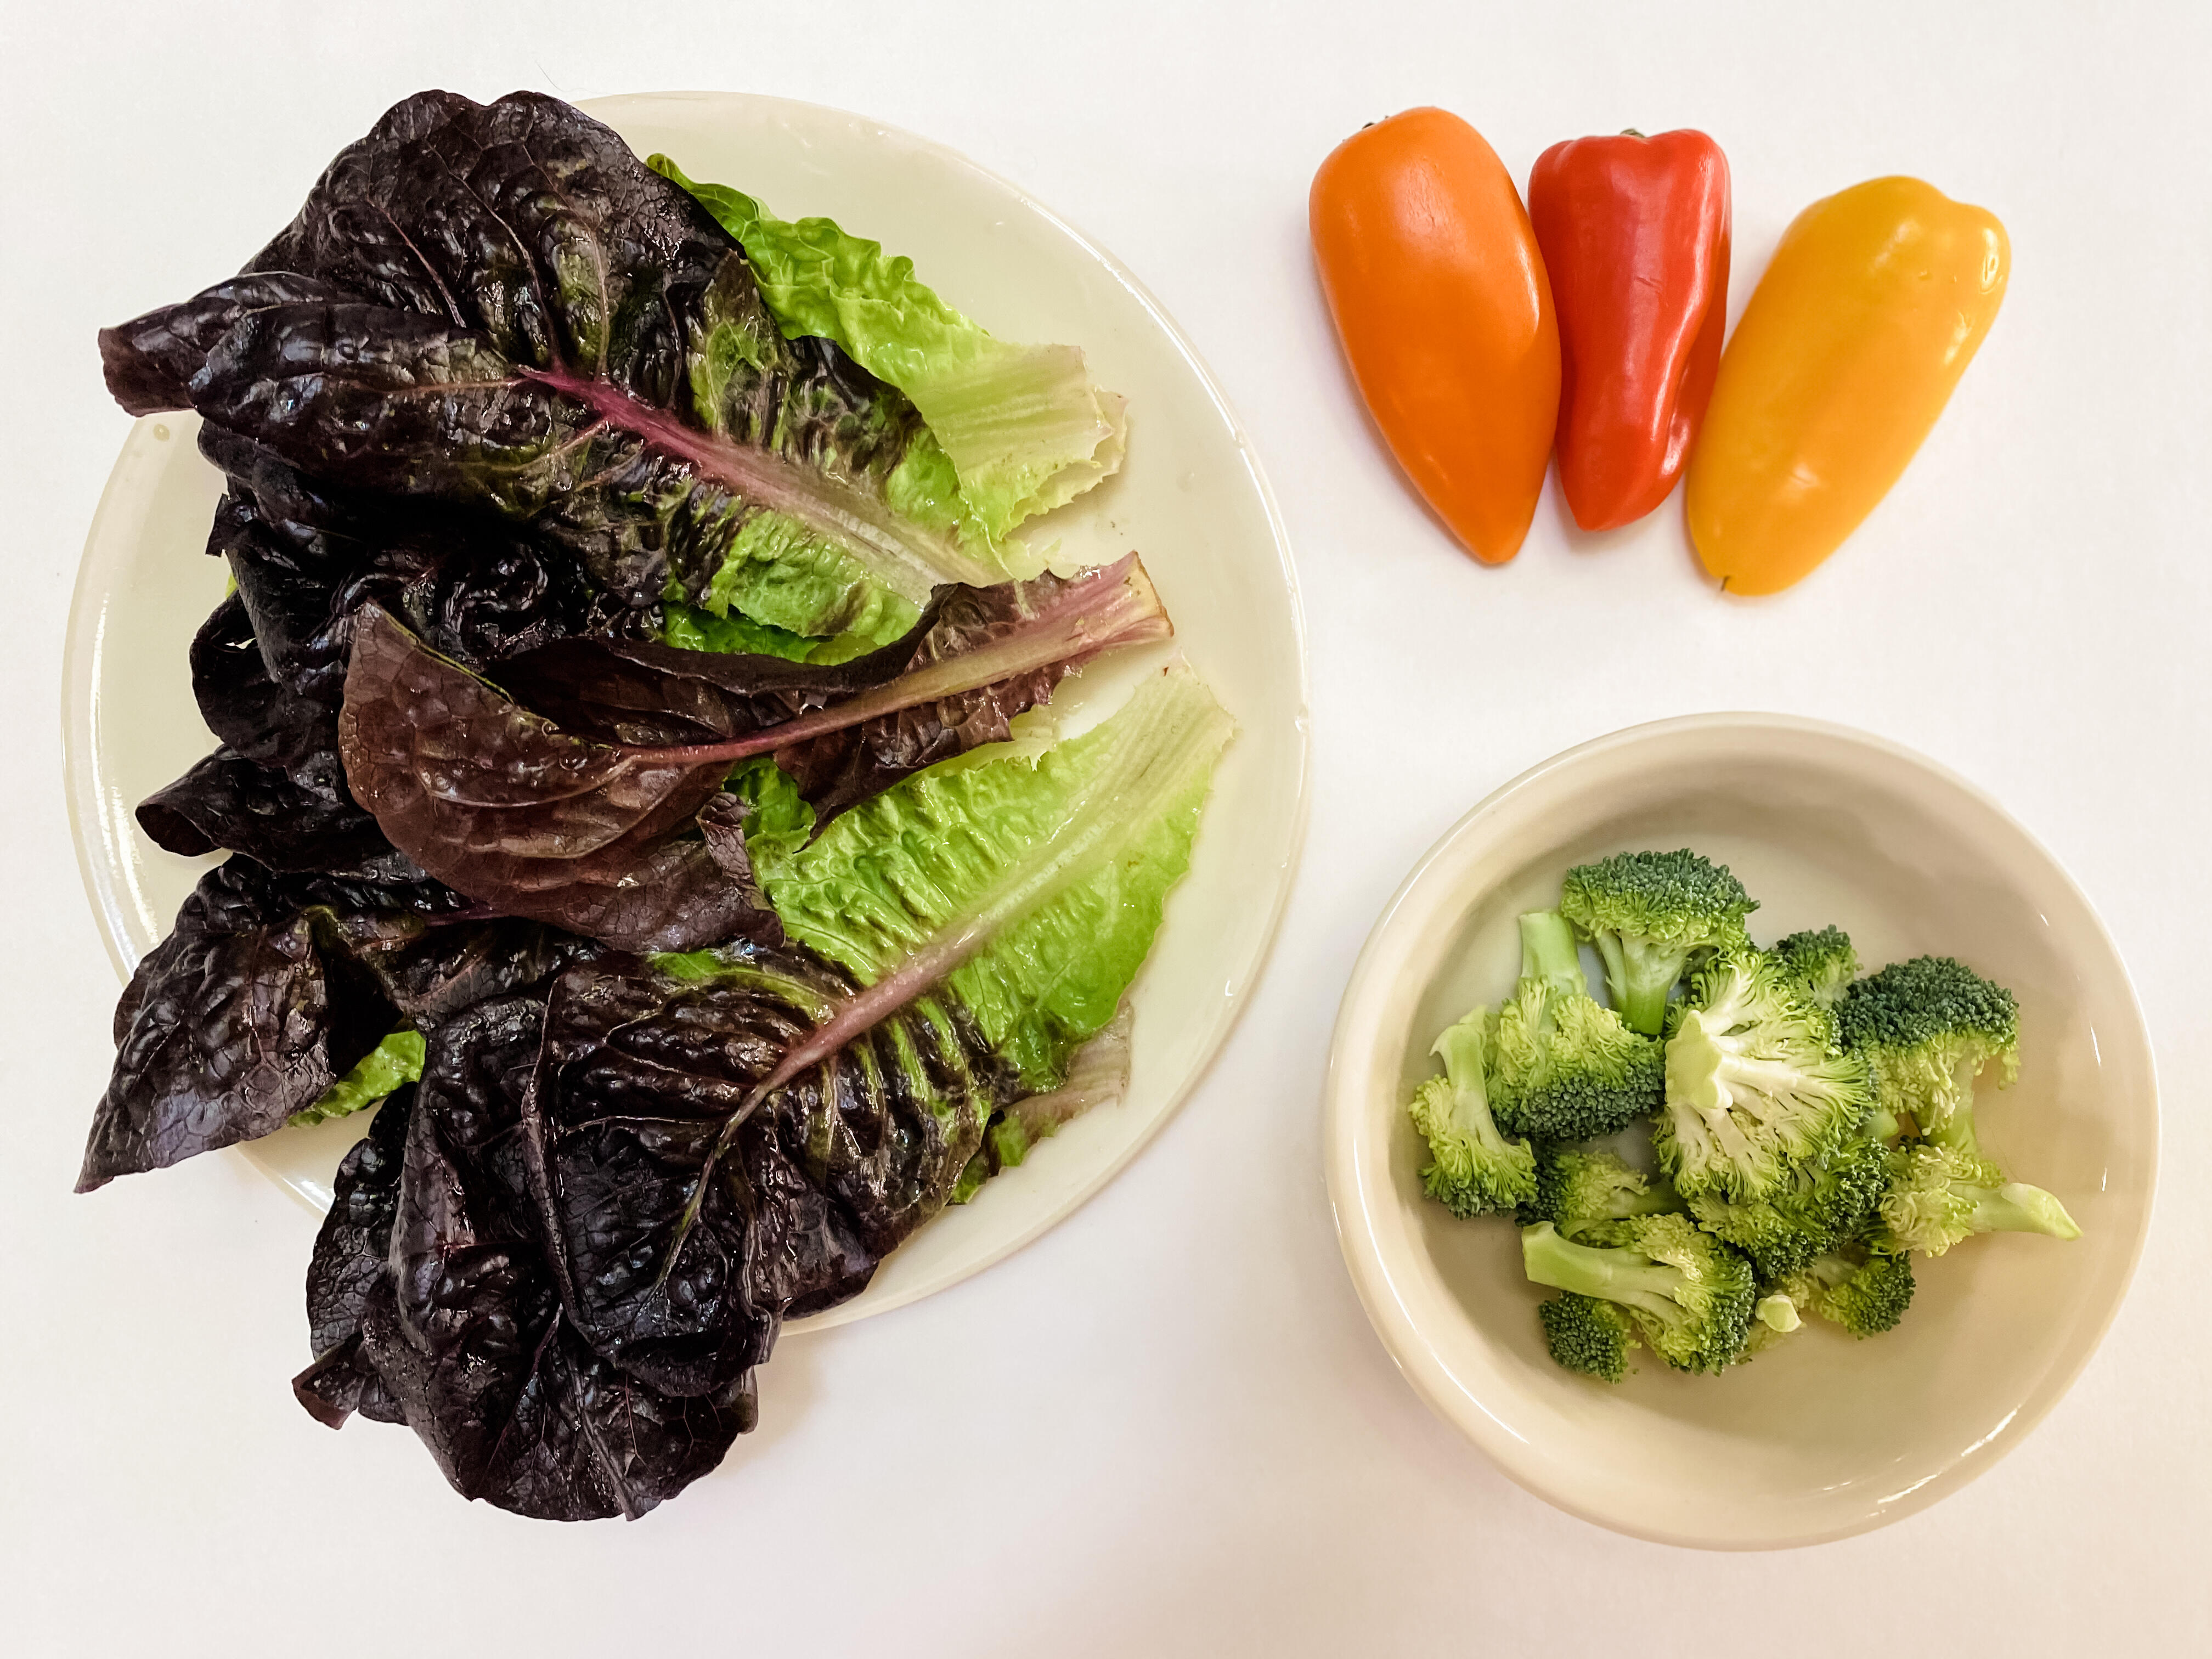 Five servings of vegetables: 3 cups of lettuce, half cup of broccoli, half cup of peppers